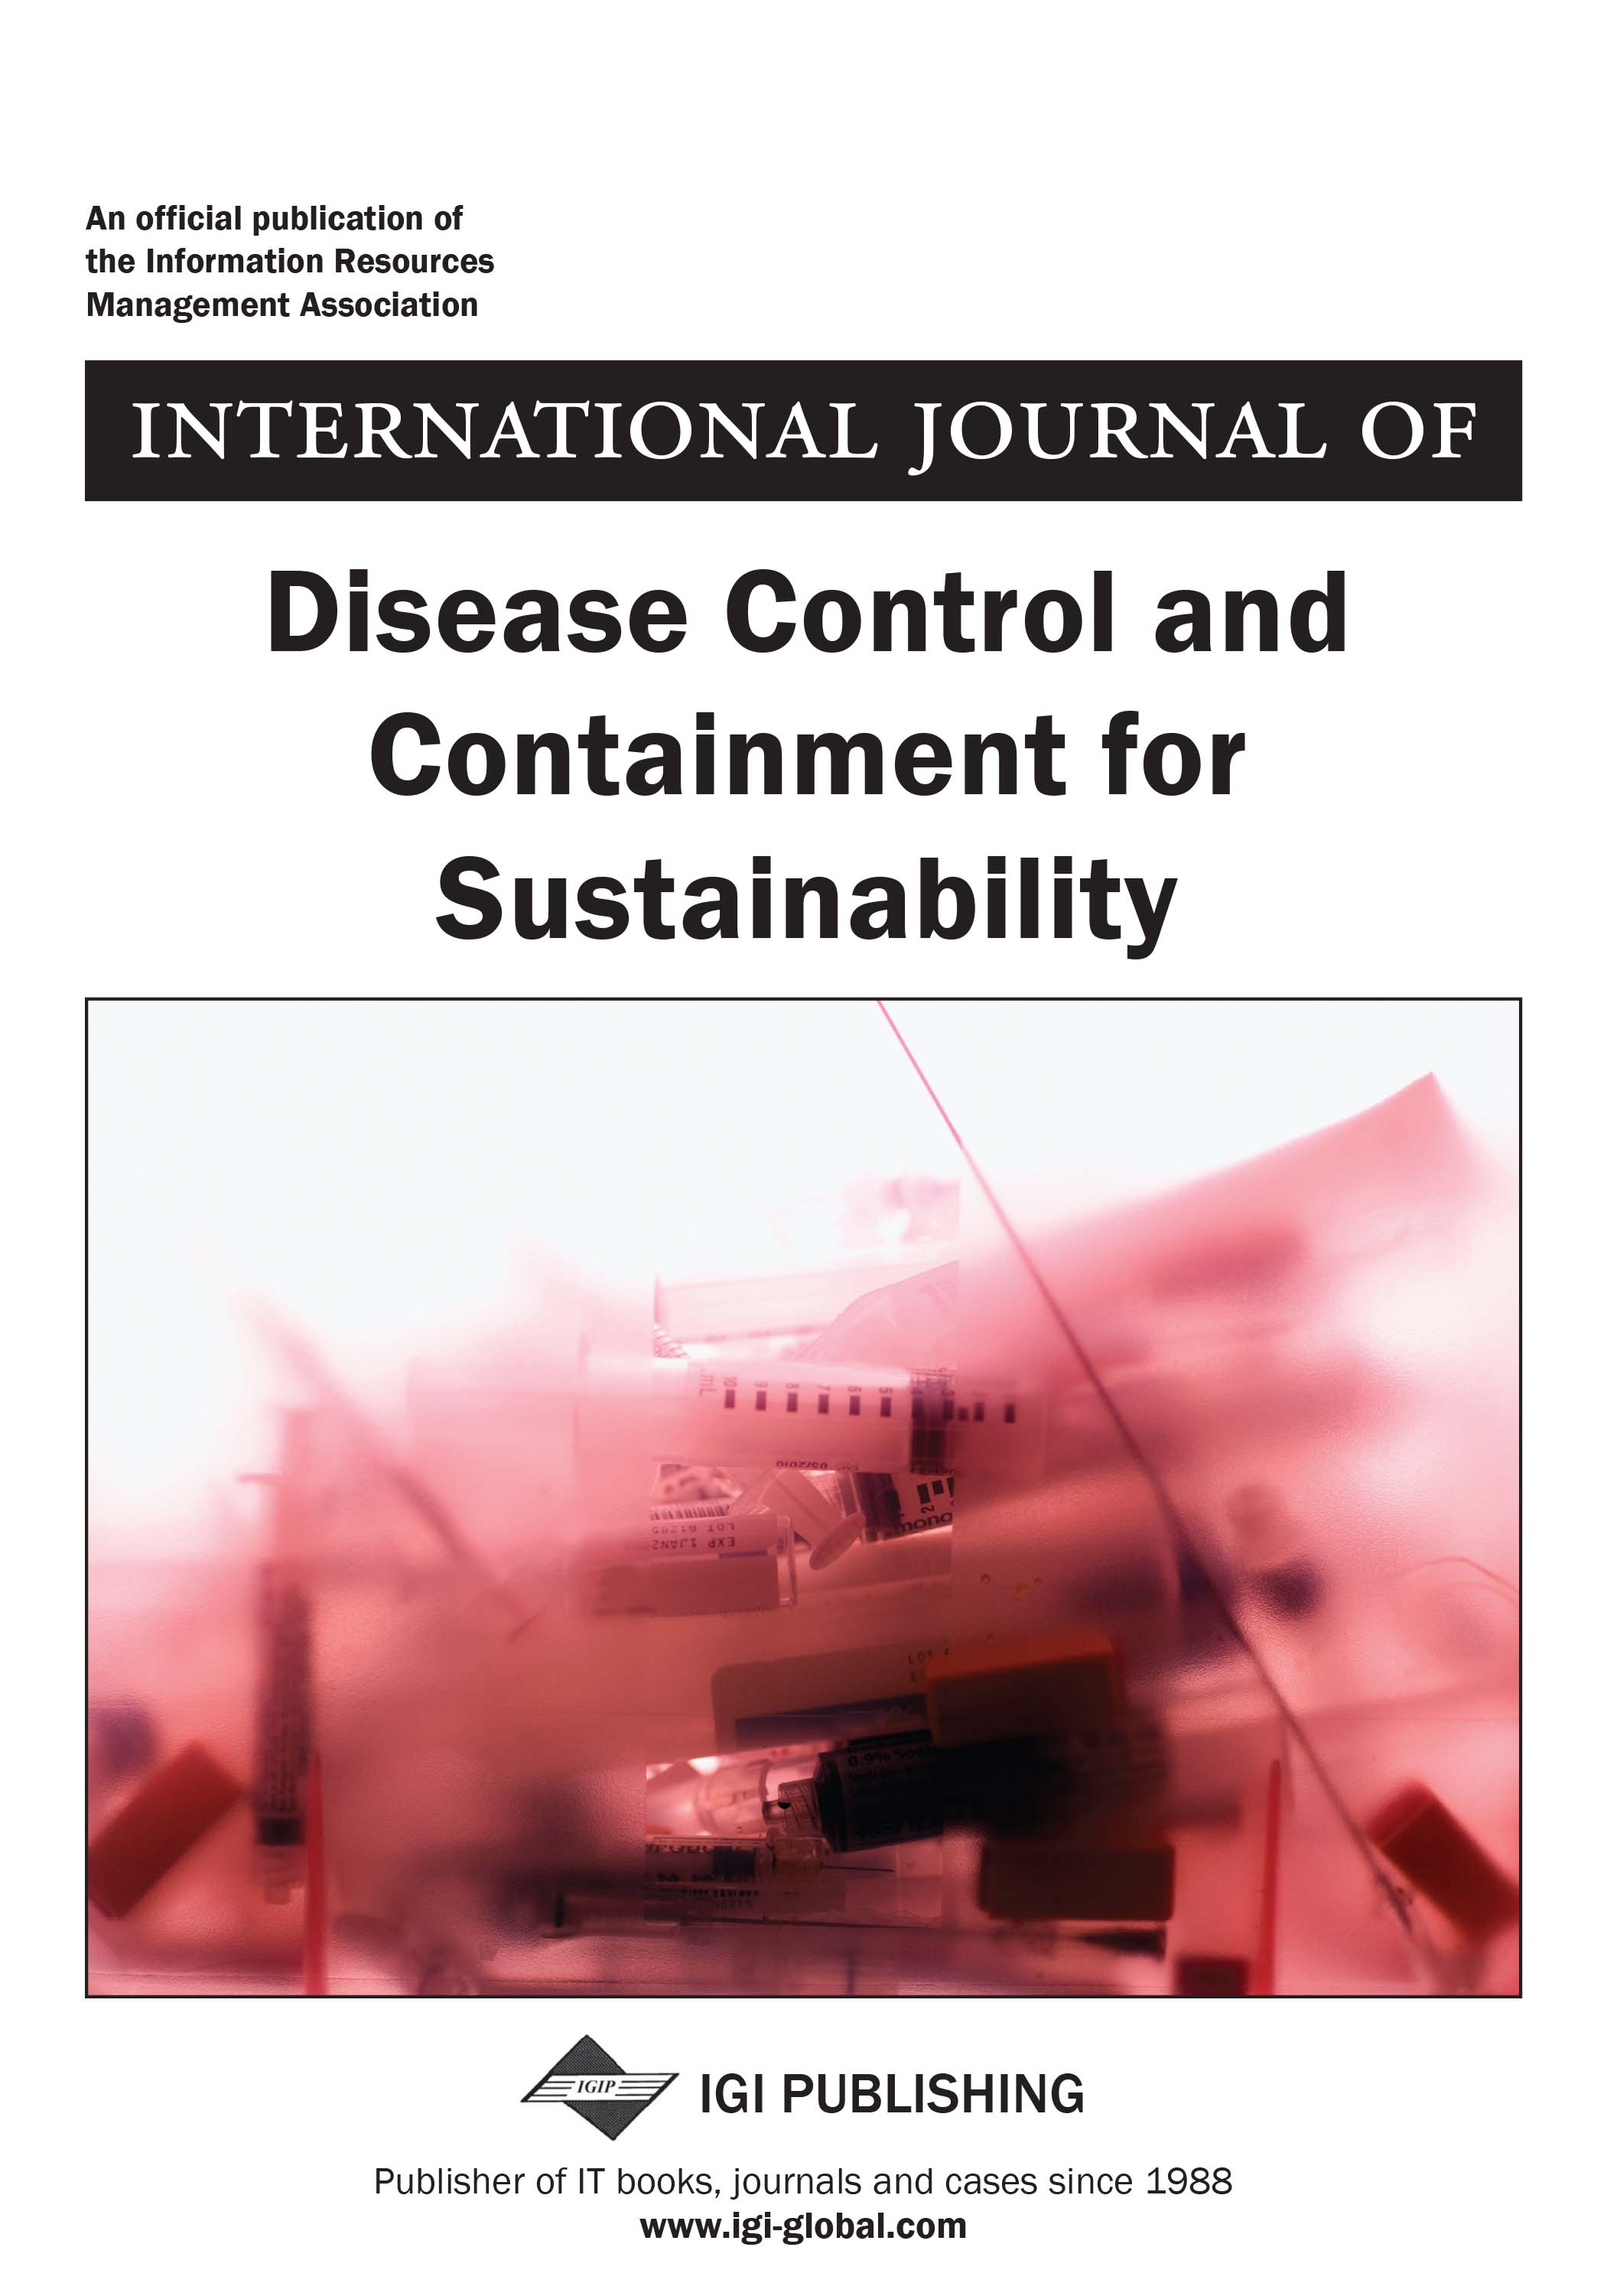 International Journal of Disease Control and Containment for Sustainability